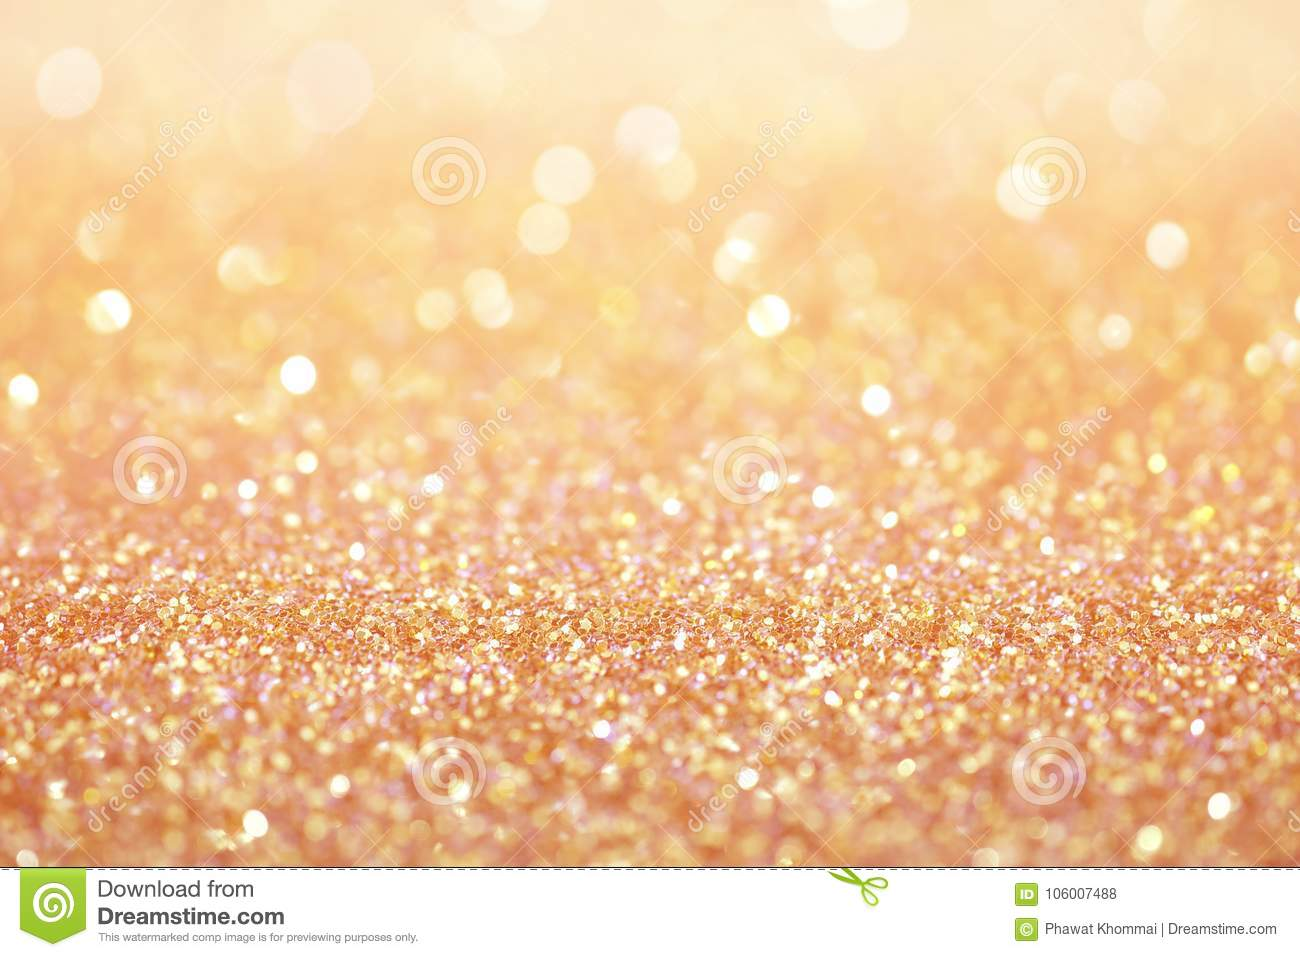 Rose gold pink dust texture abstract background